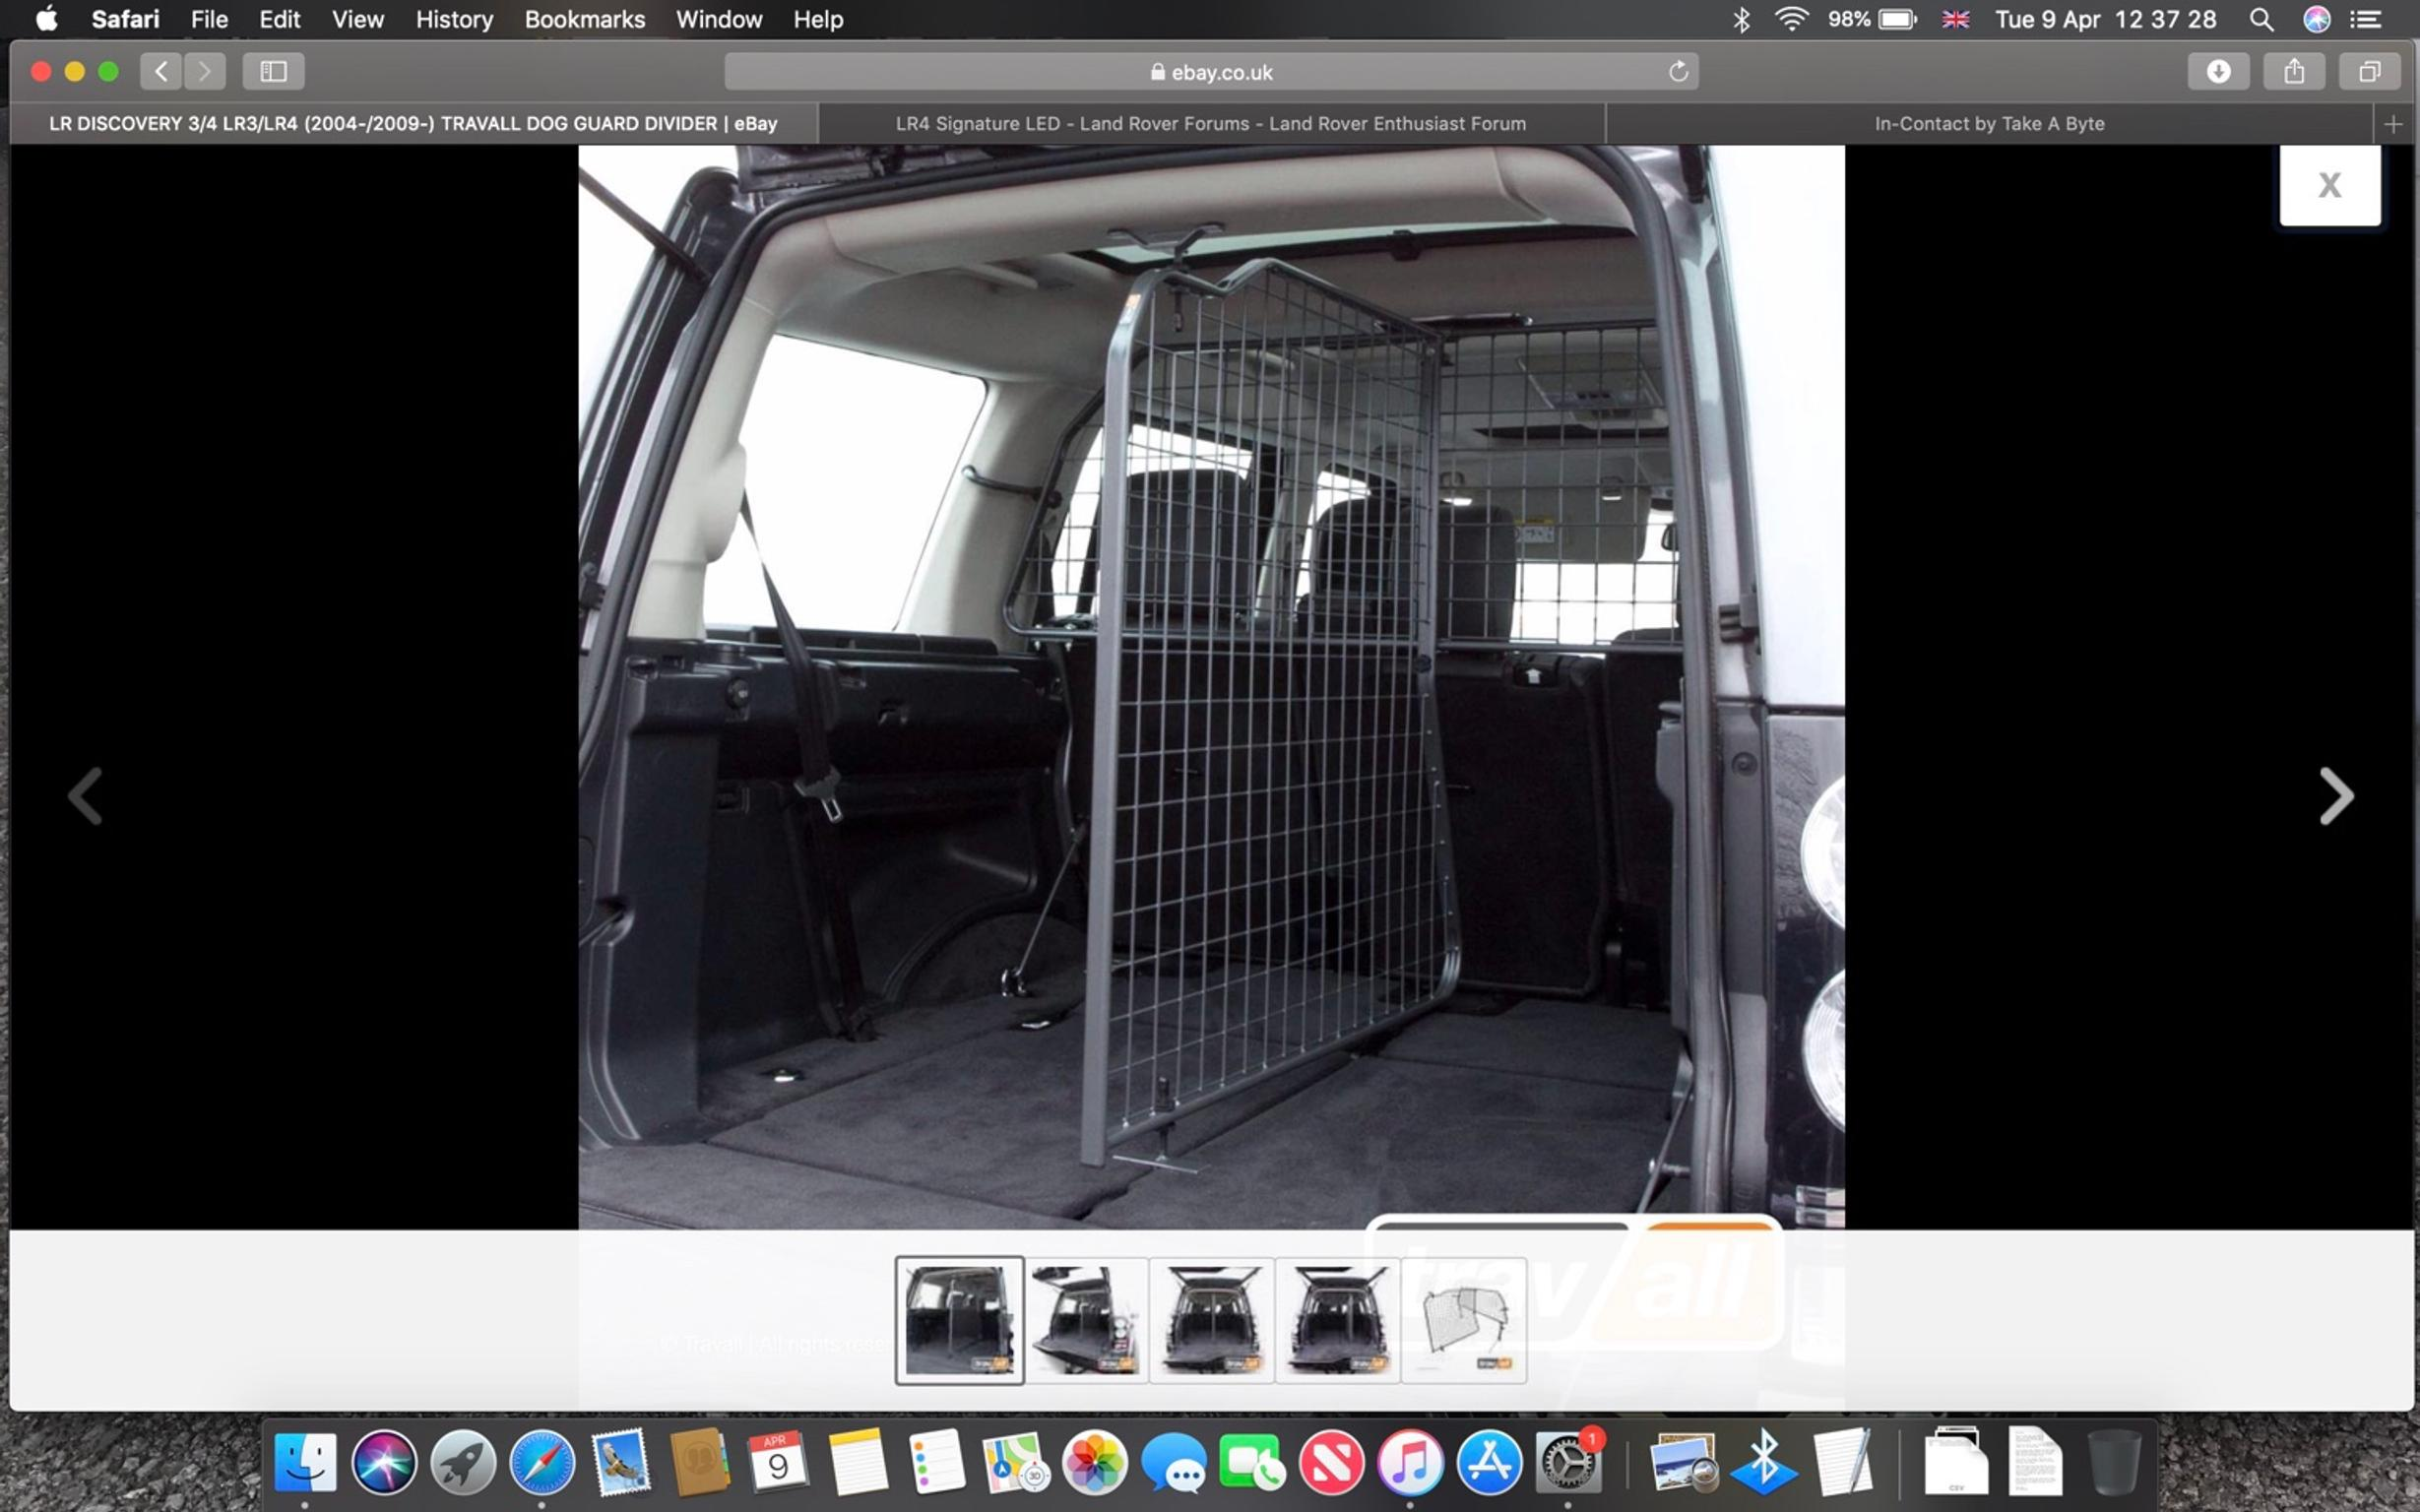 Dog guard Land Rover Discovery 4 lr4